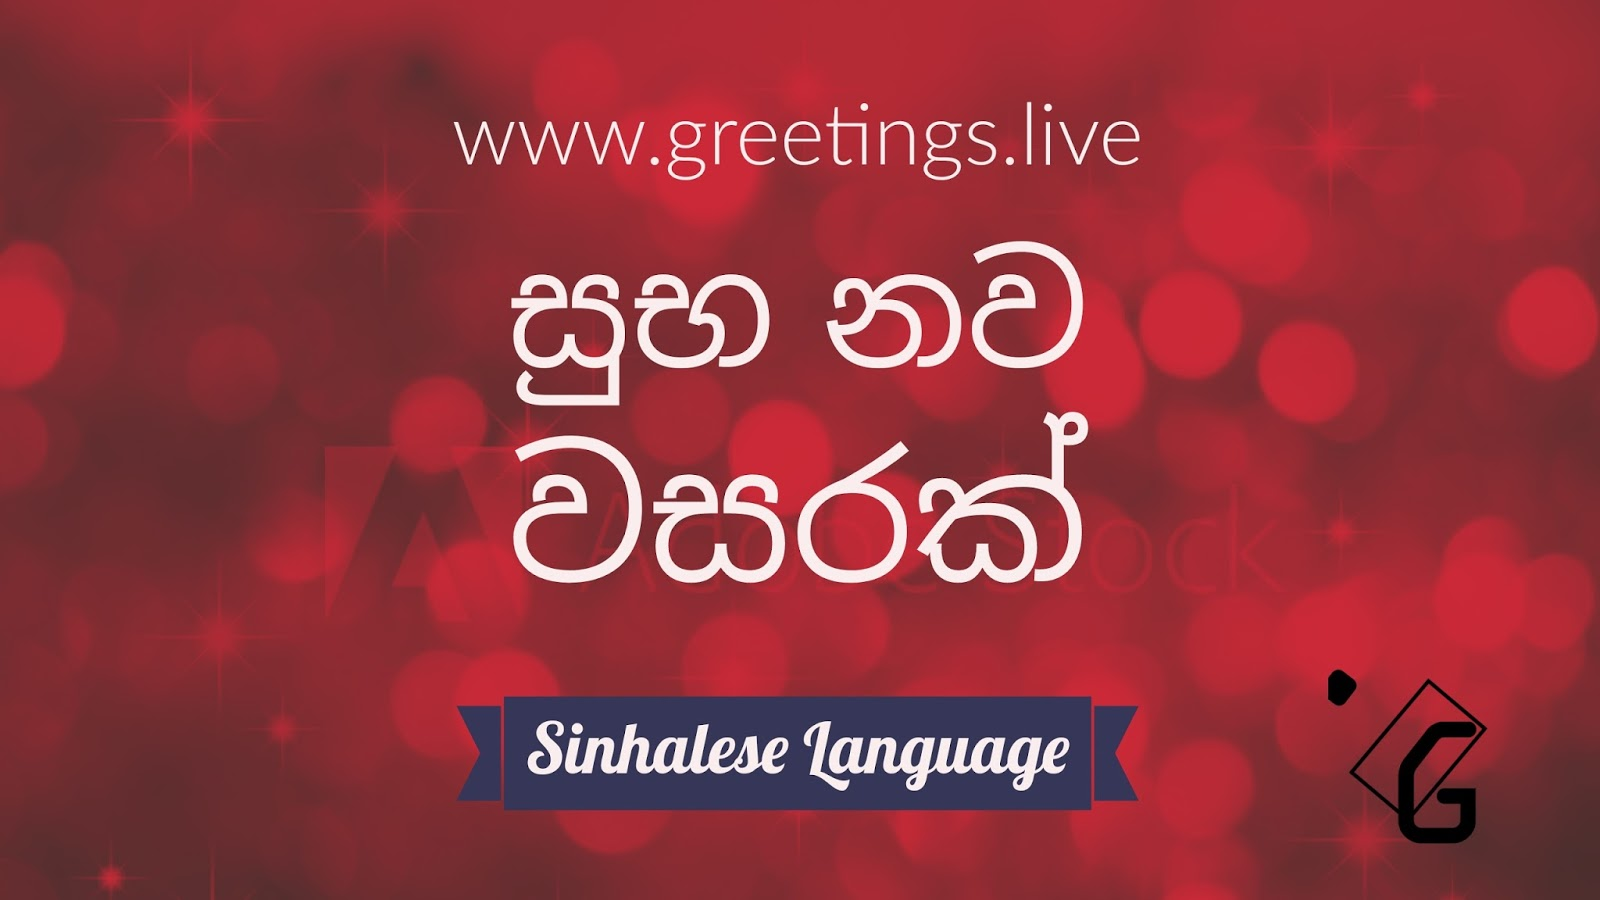 Greetingsve hd images love smile birthday wishes free download red sparkling background sinhalese greetings kristyandbryce Images